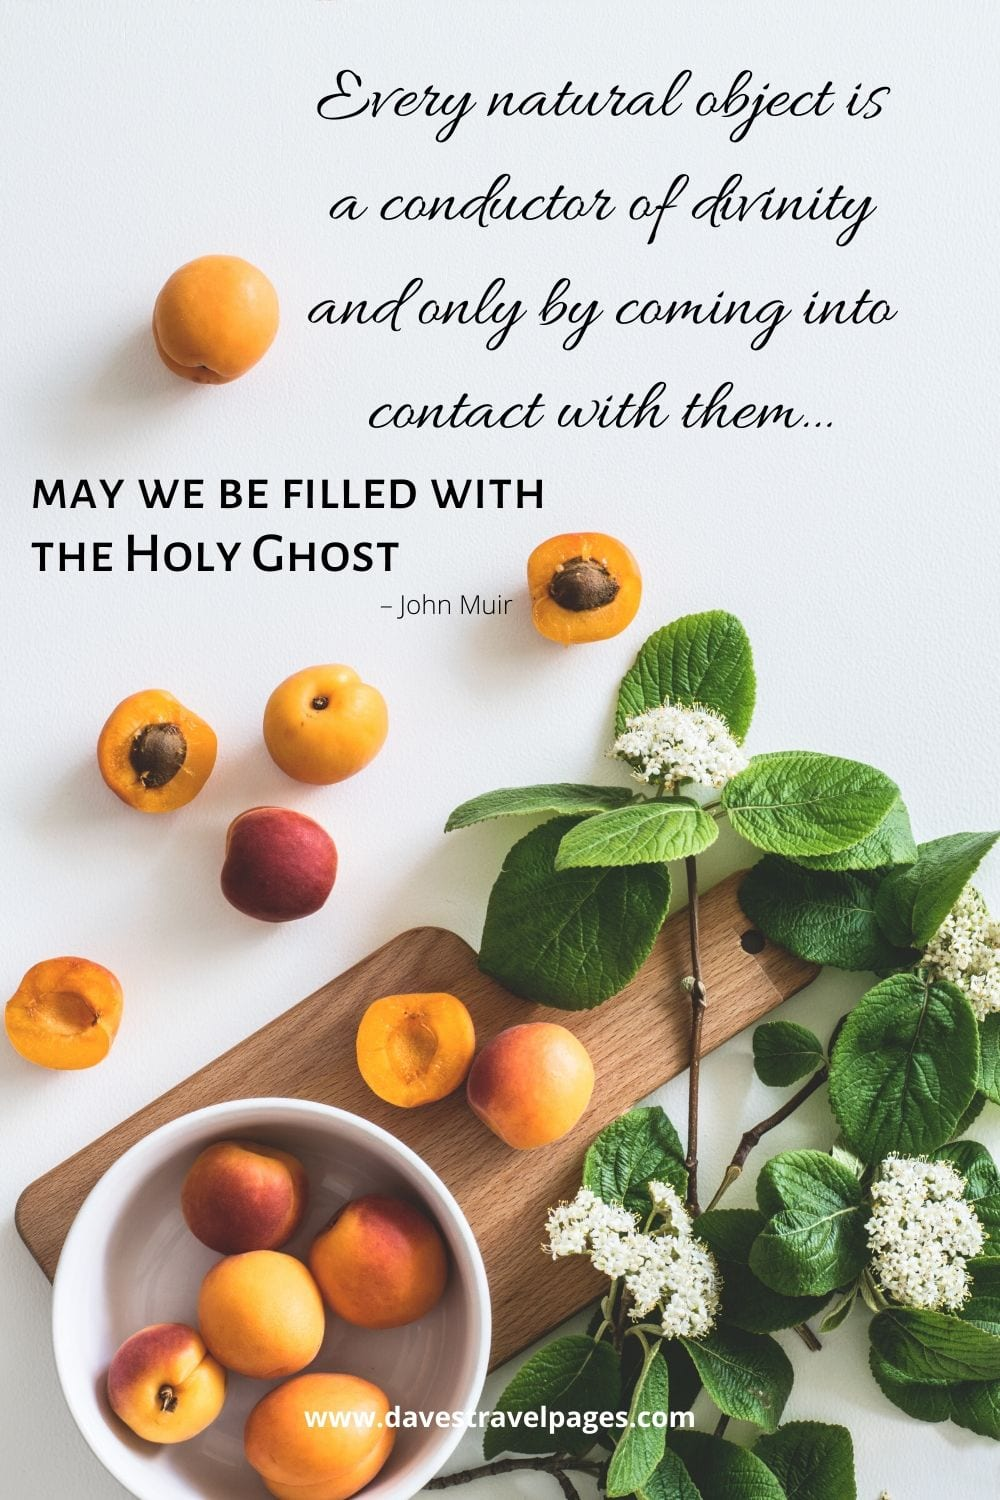 """Nature quotes by John Muir - """"Every natural object is a conductor of divinity and only by coming into contact with them… may we be filled with the Holy Ghost."""""""